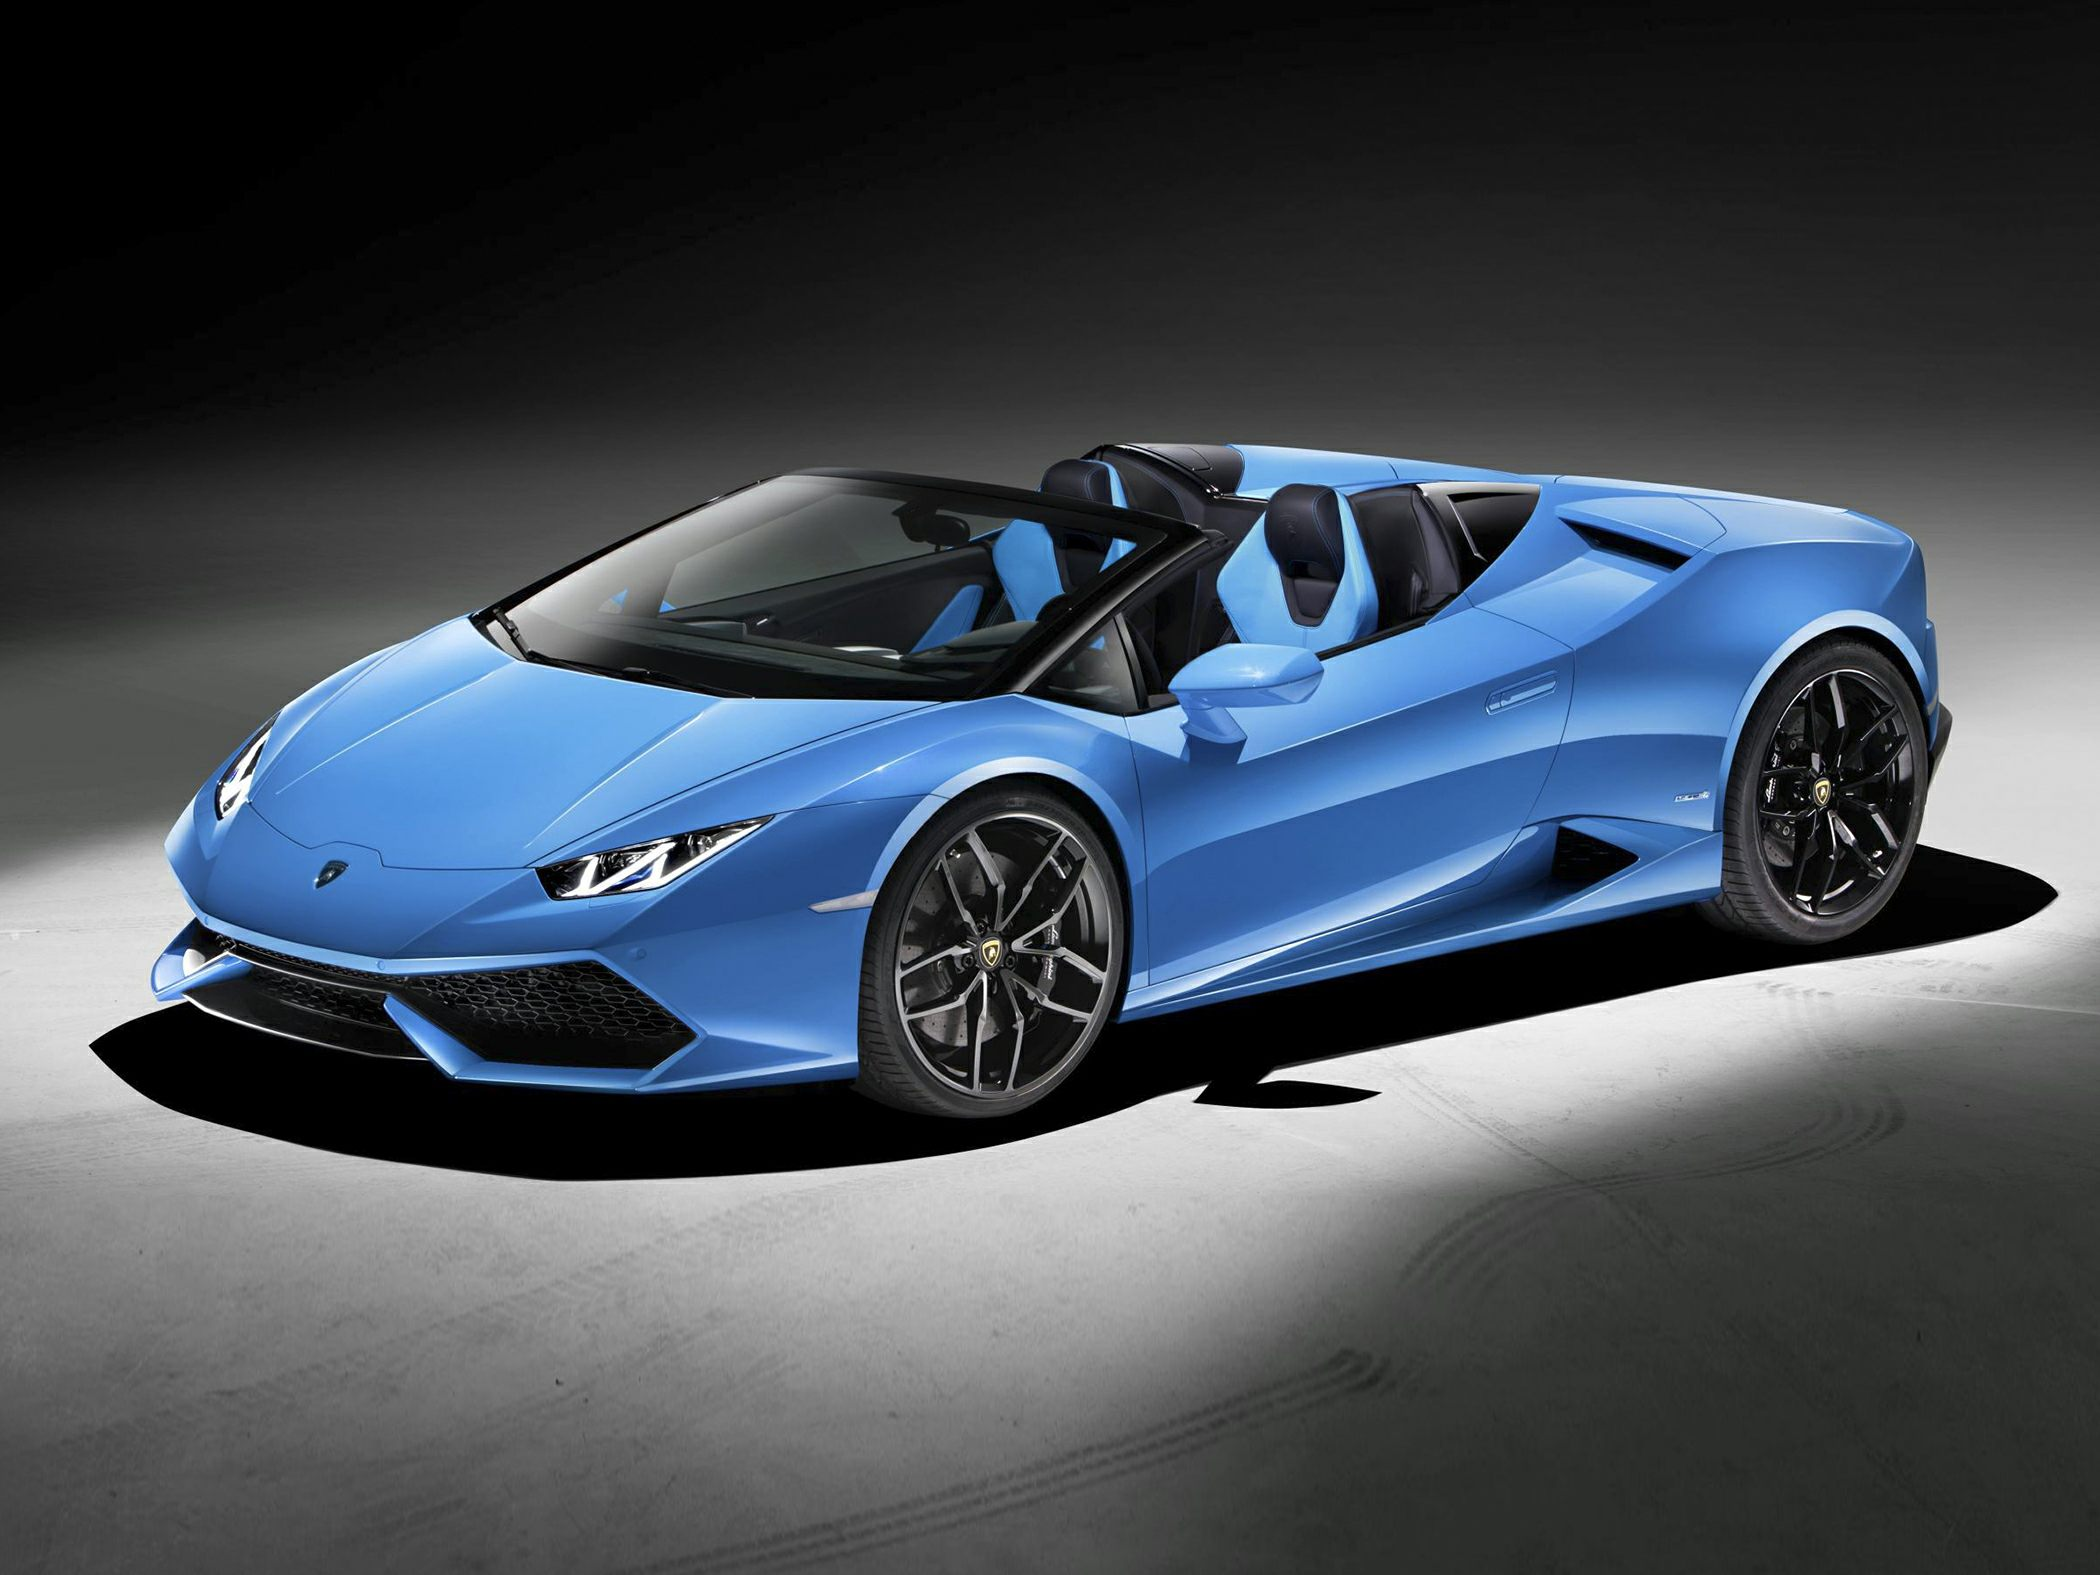 2018 Lamborghini Huracan Lp610 4s 2dr All Wheel Drive Spyder Pricing And Options